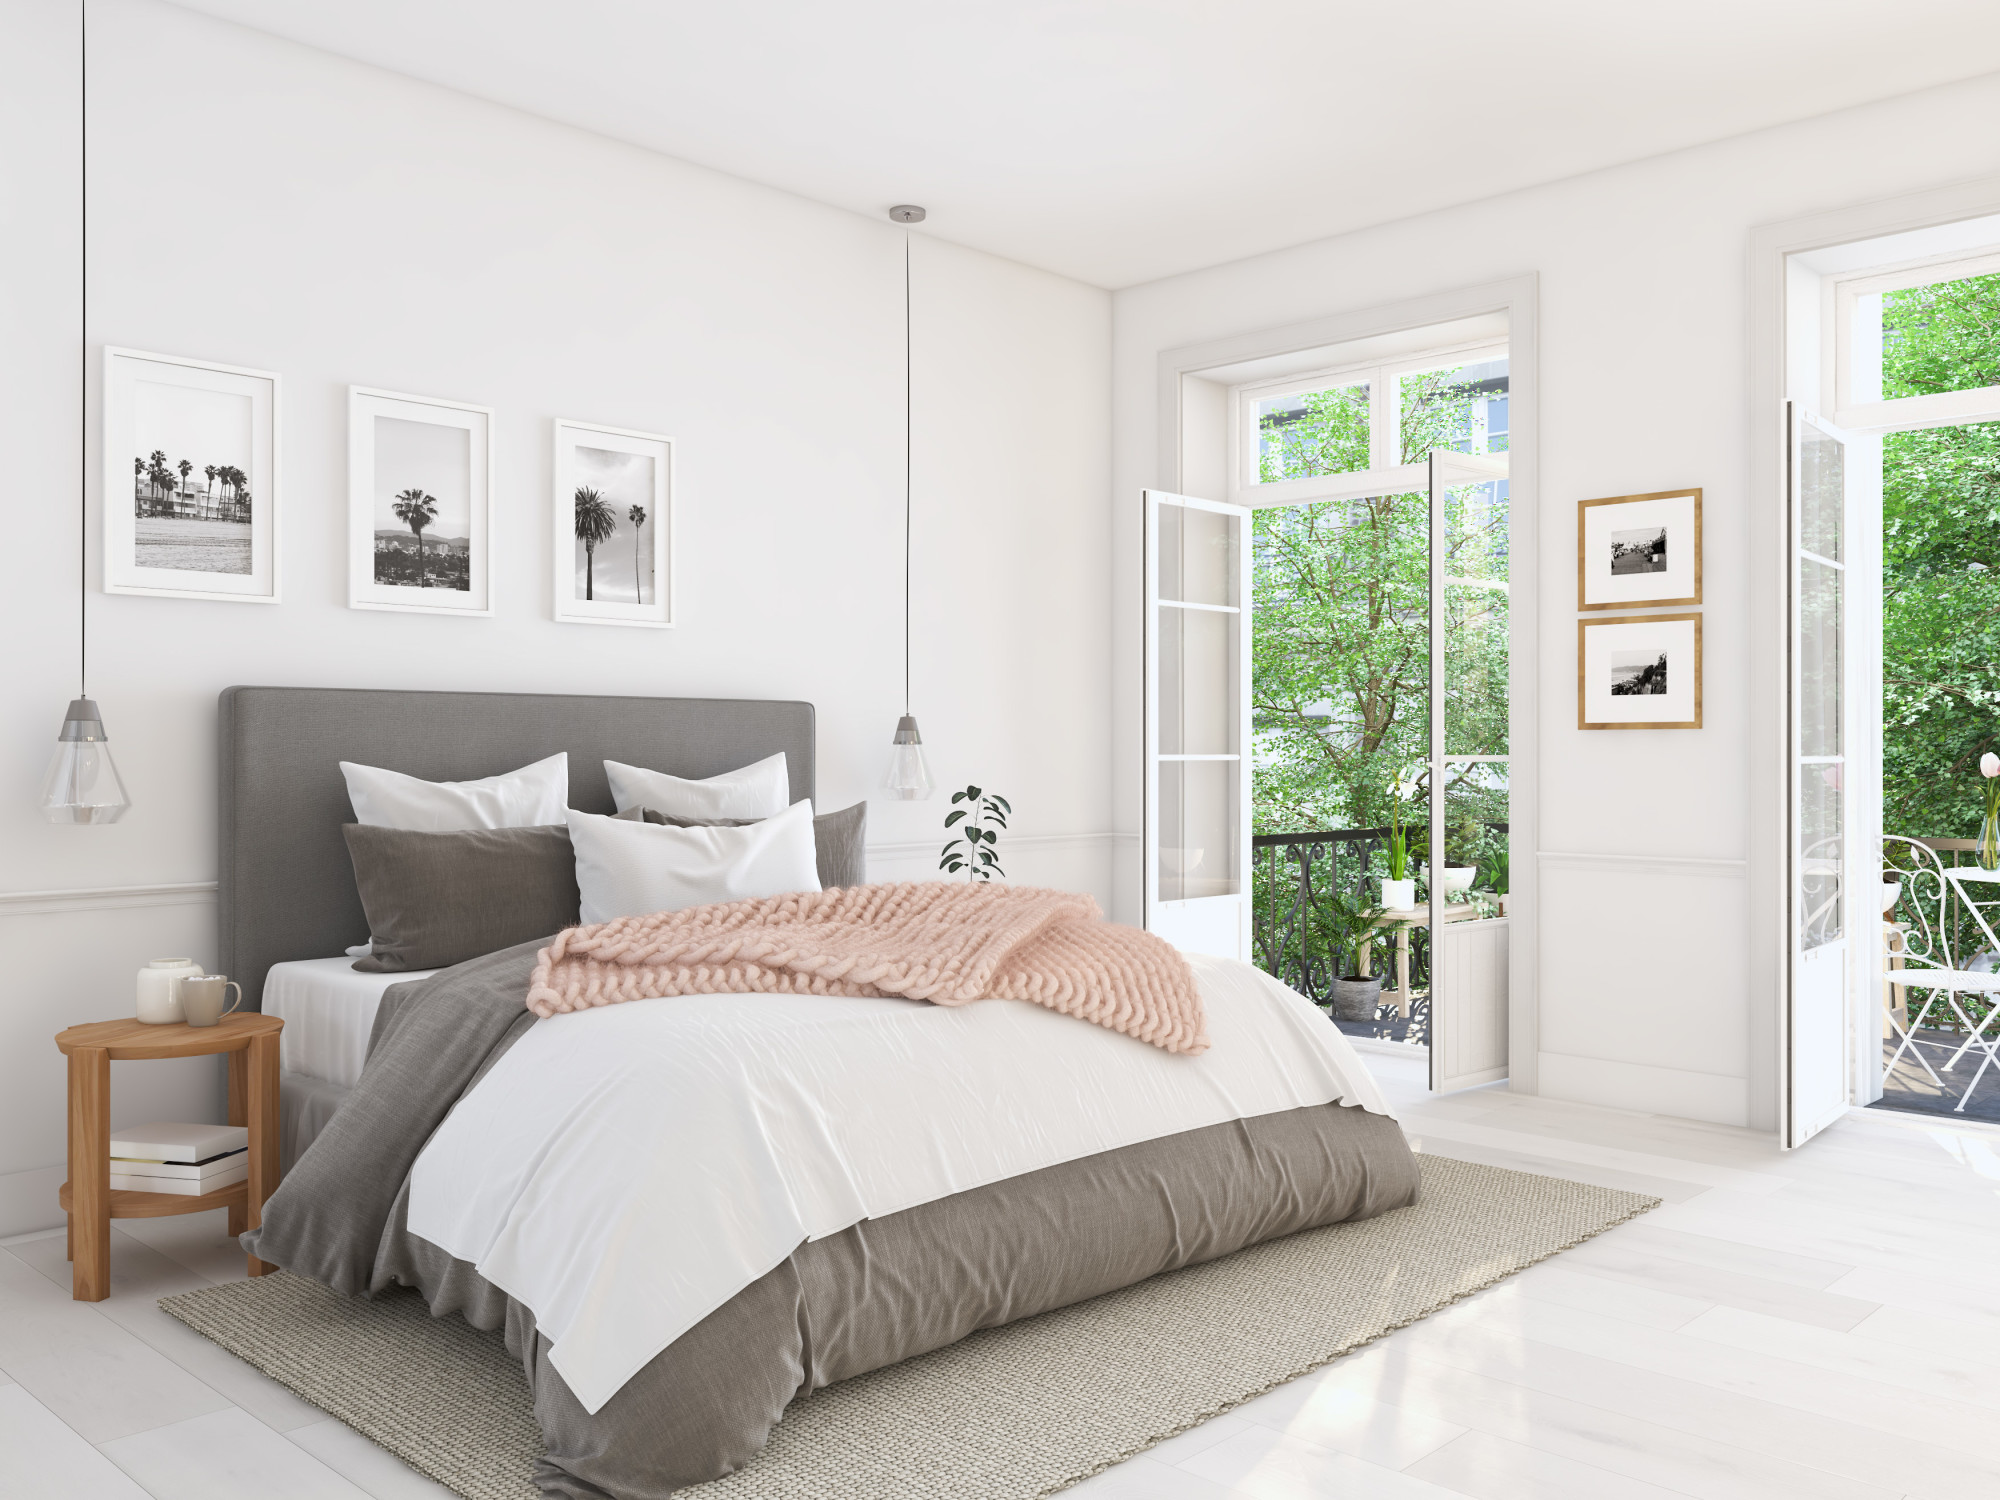 4 Awesome Ideas to Design the Perfect Bedroom